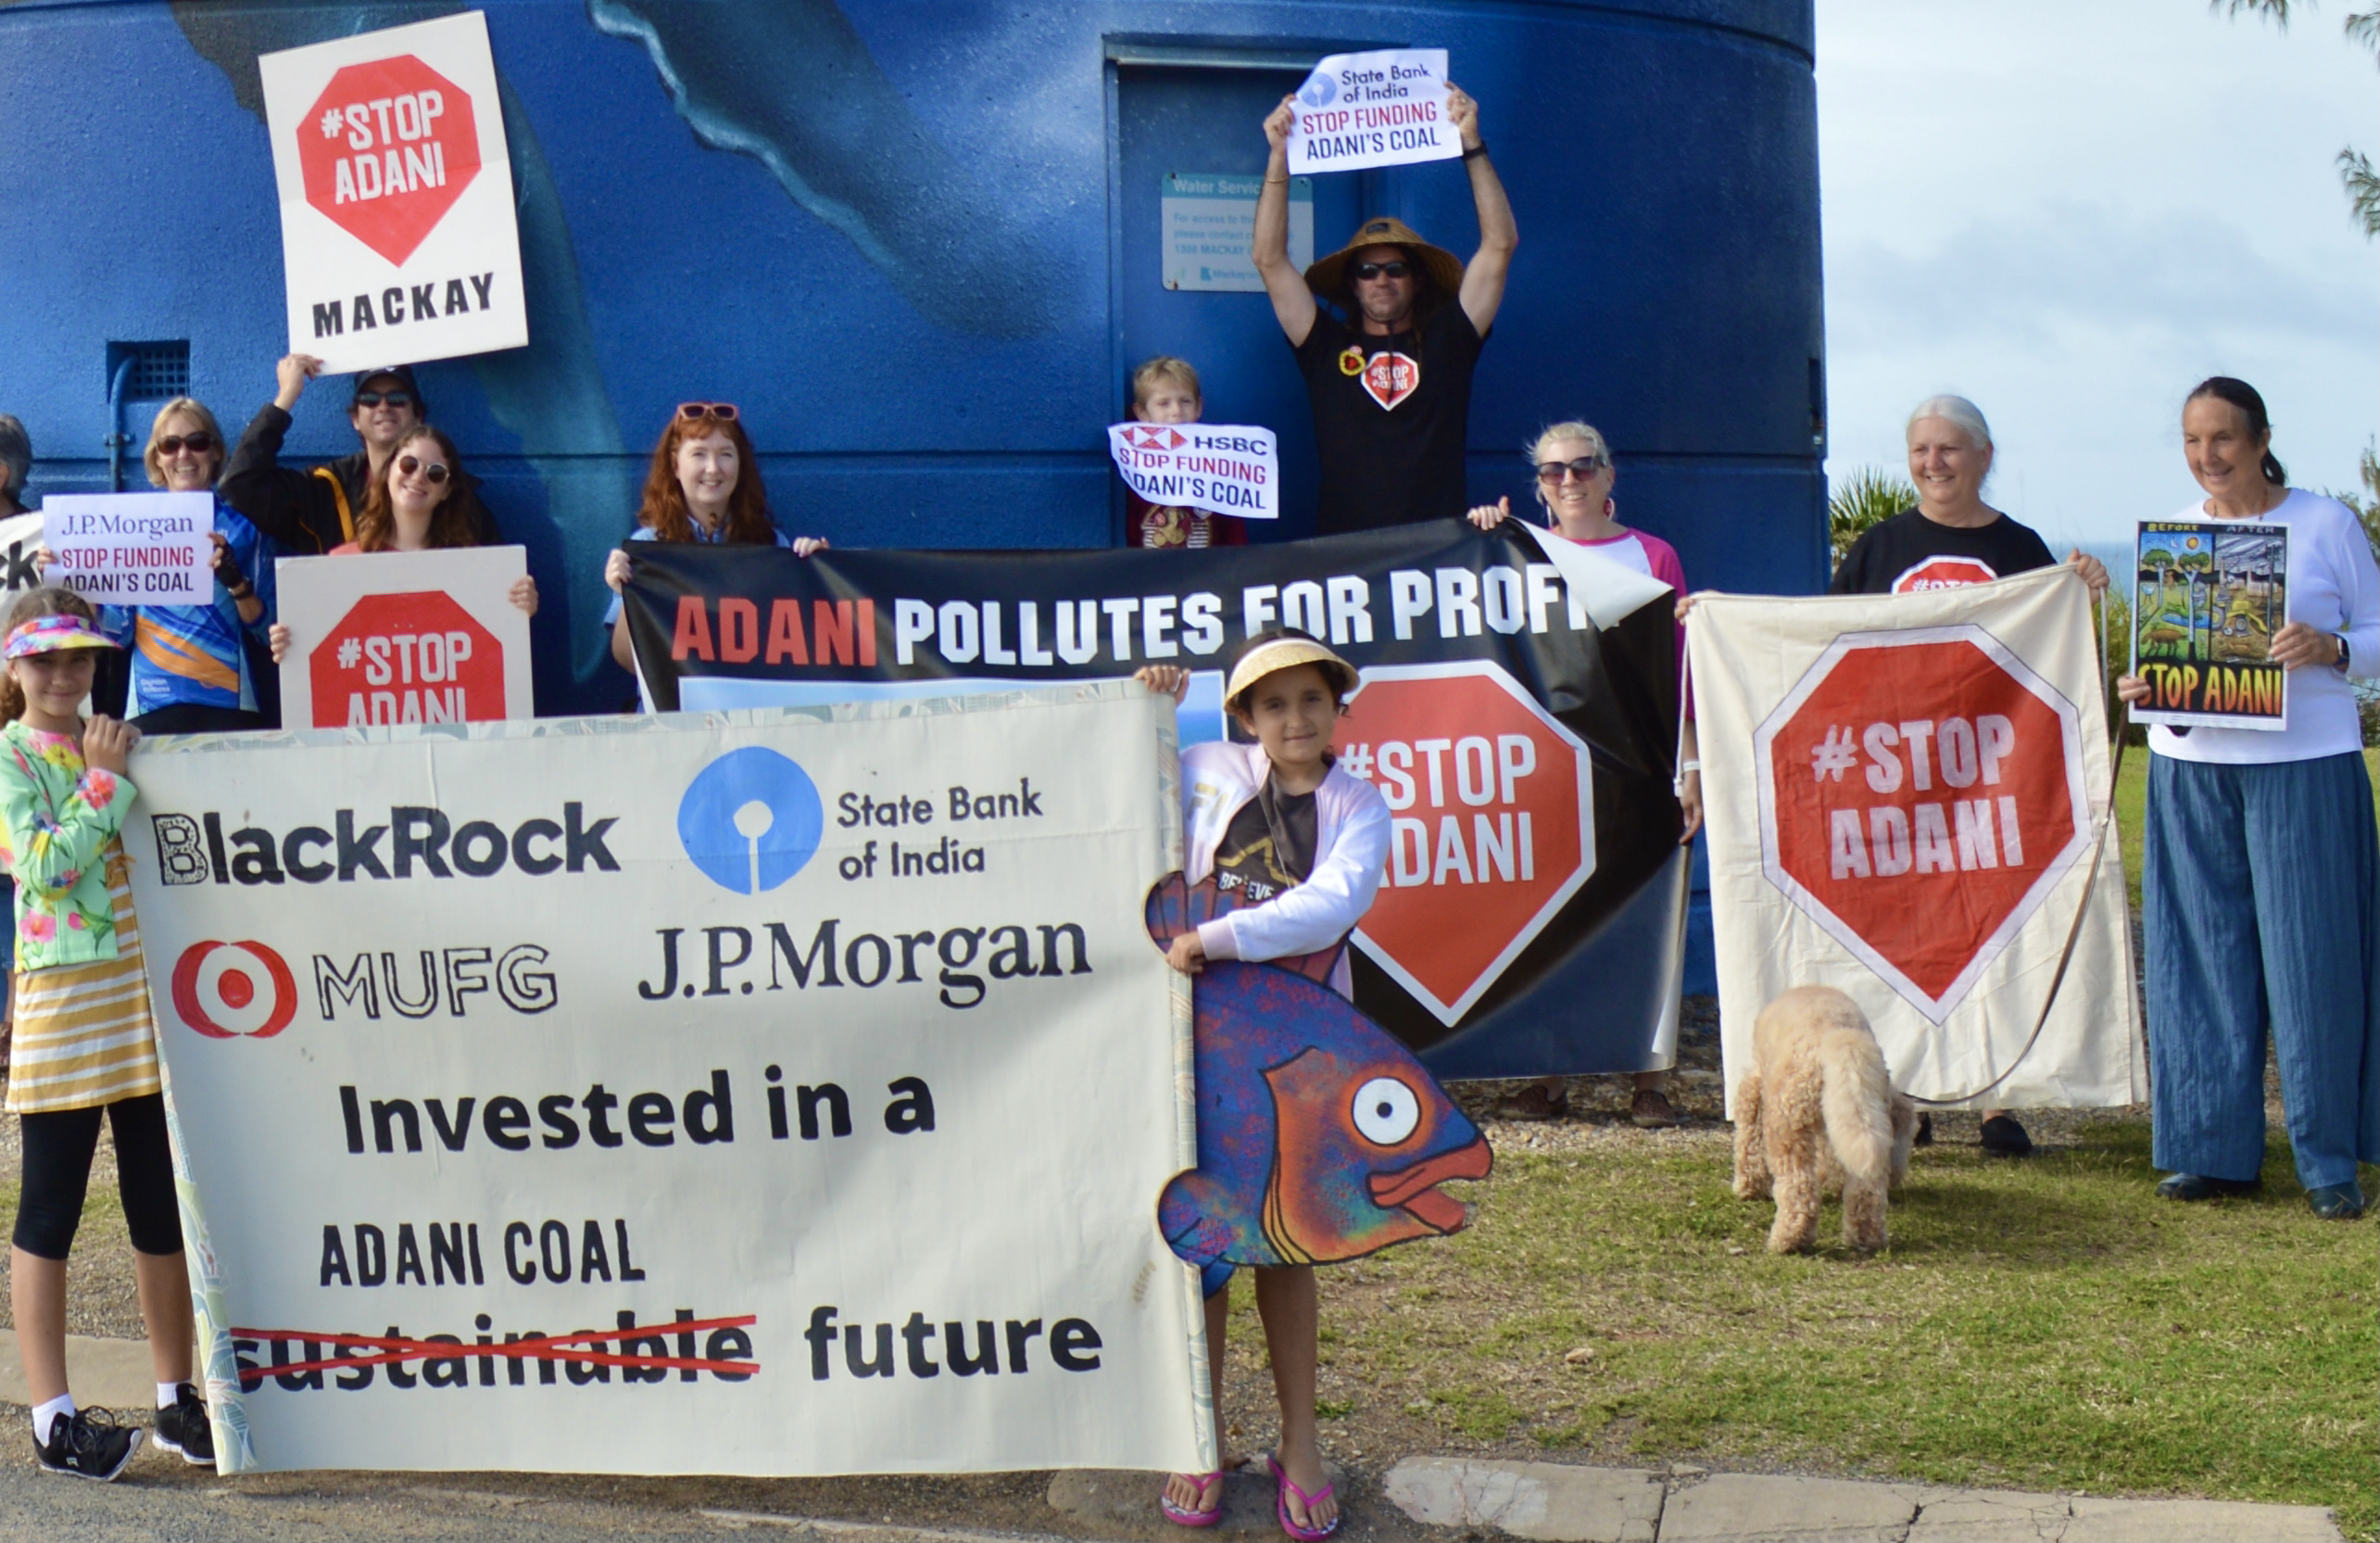 Image: A group of people standing outdoors with a whale mural behind them, holding signs telling Adani investors to stop funding Adani coal